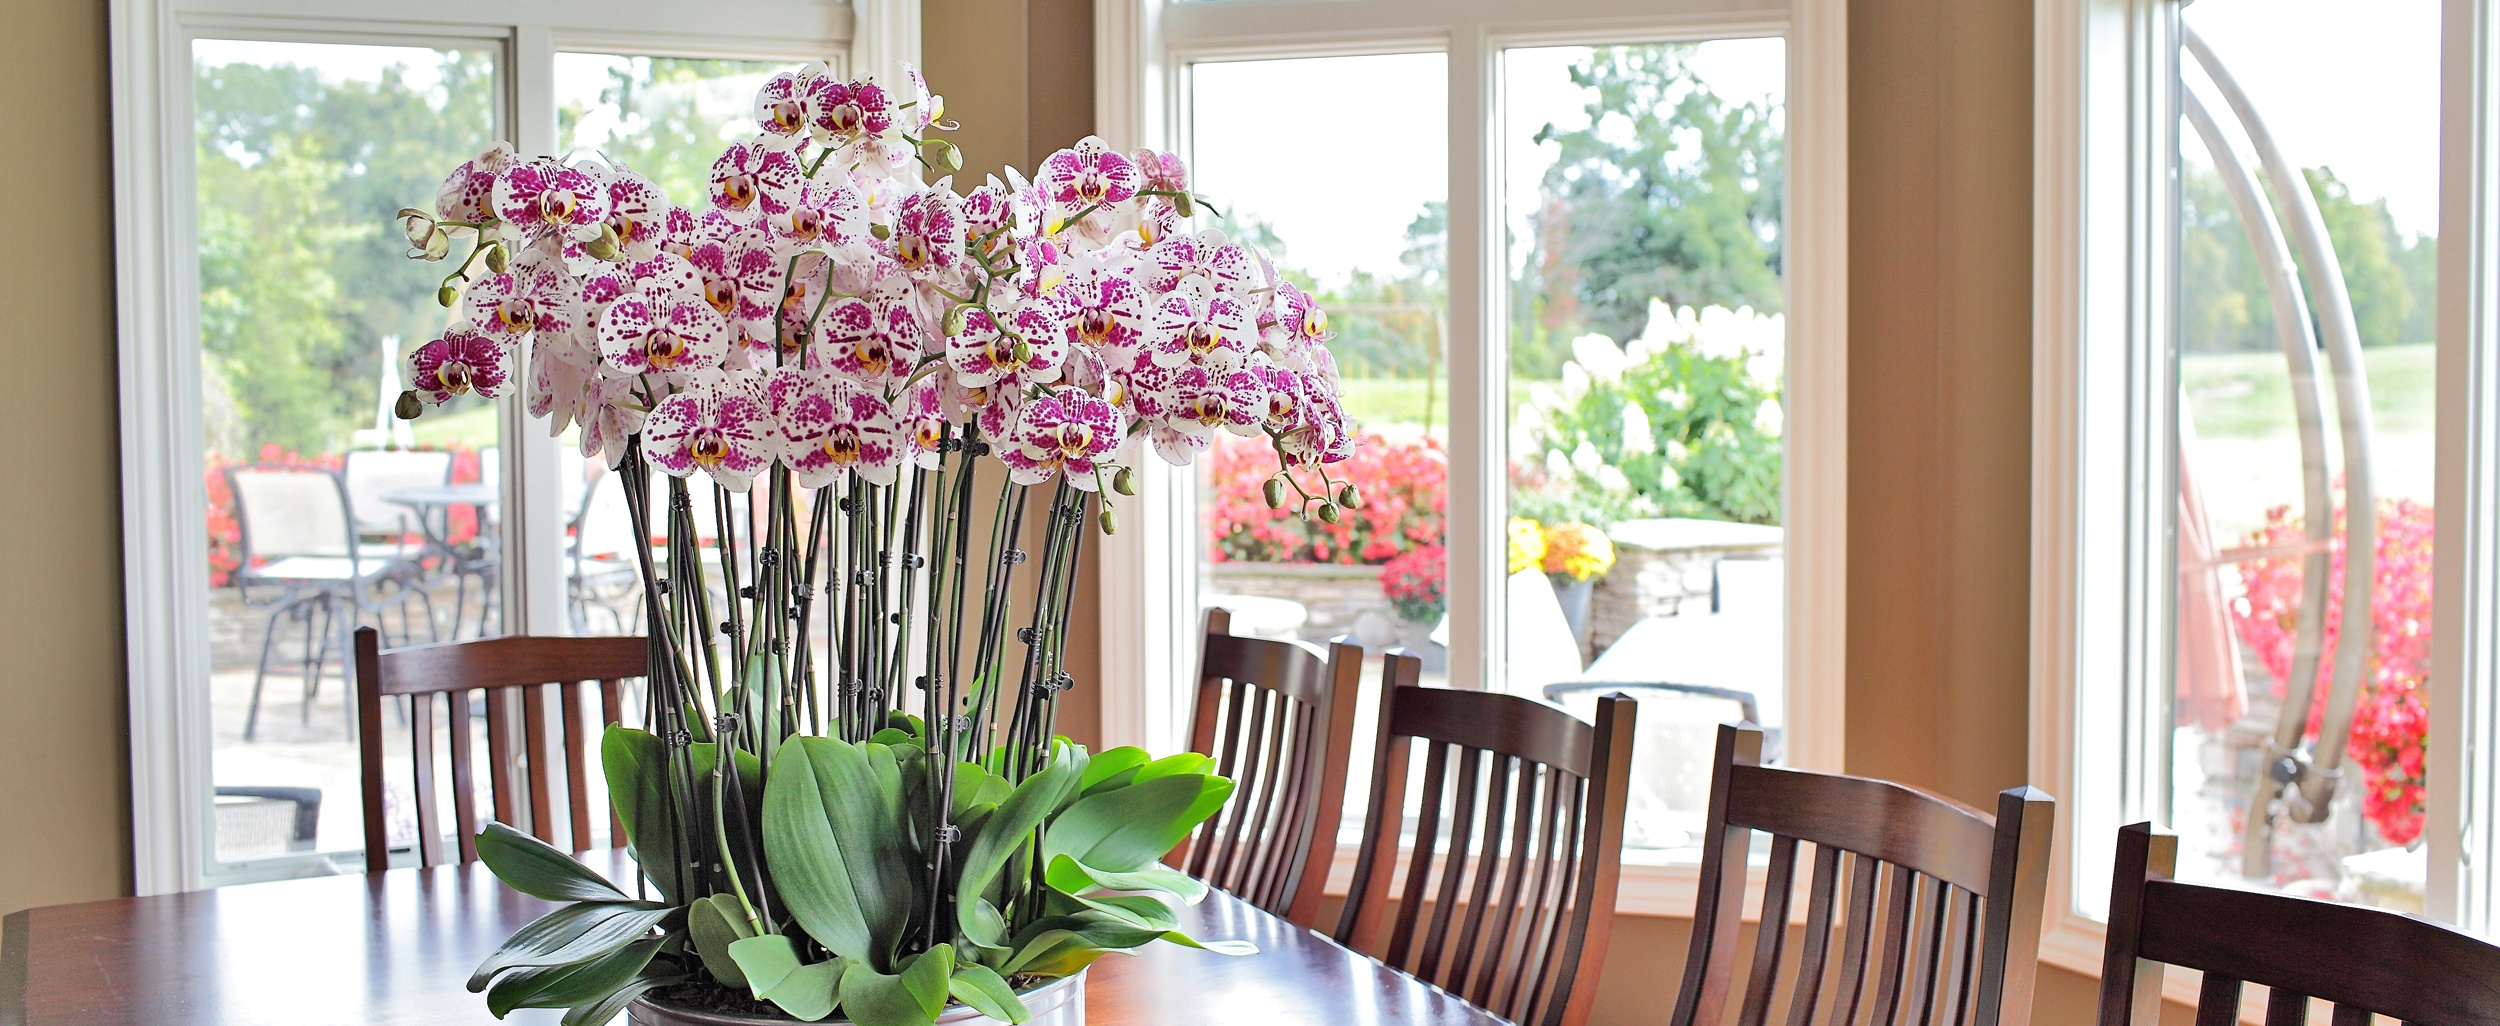 Orchid sitting on table